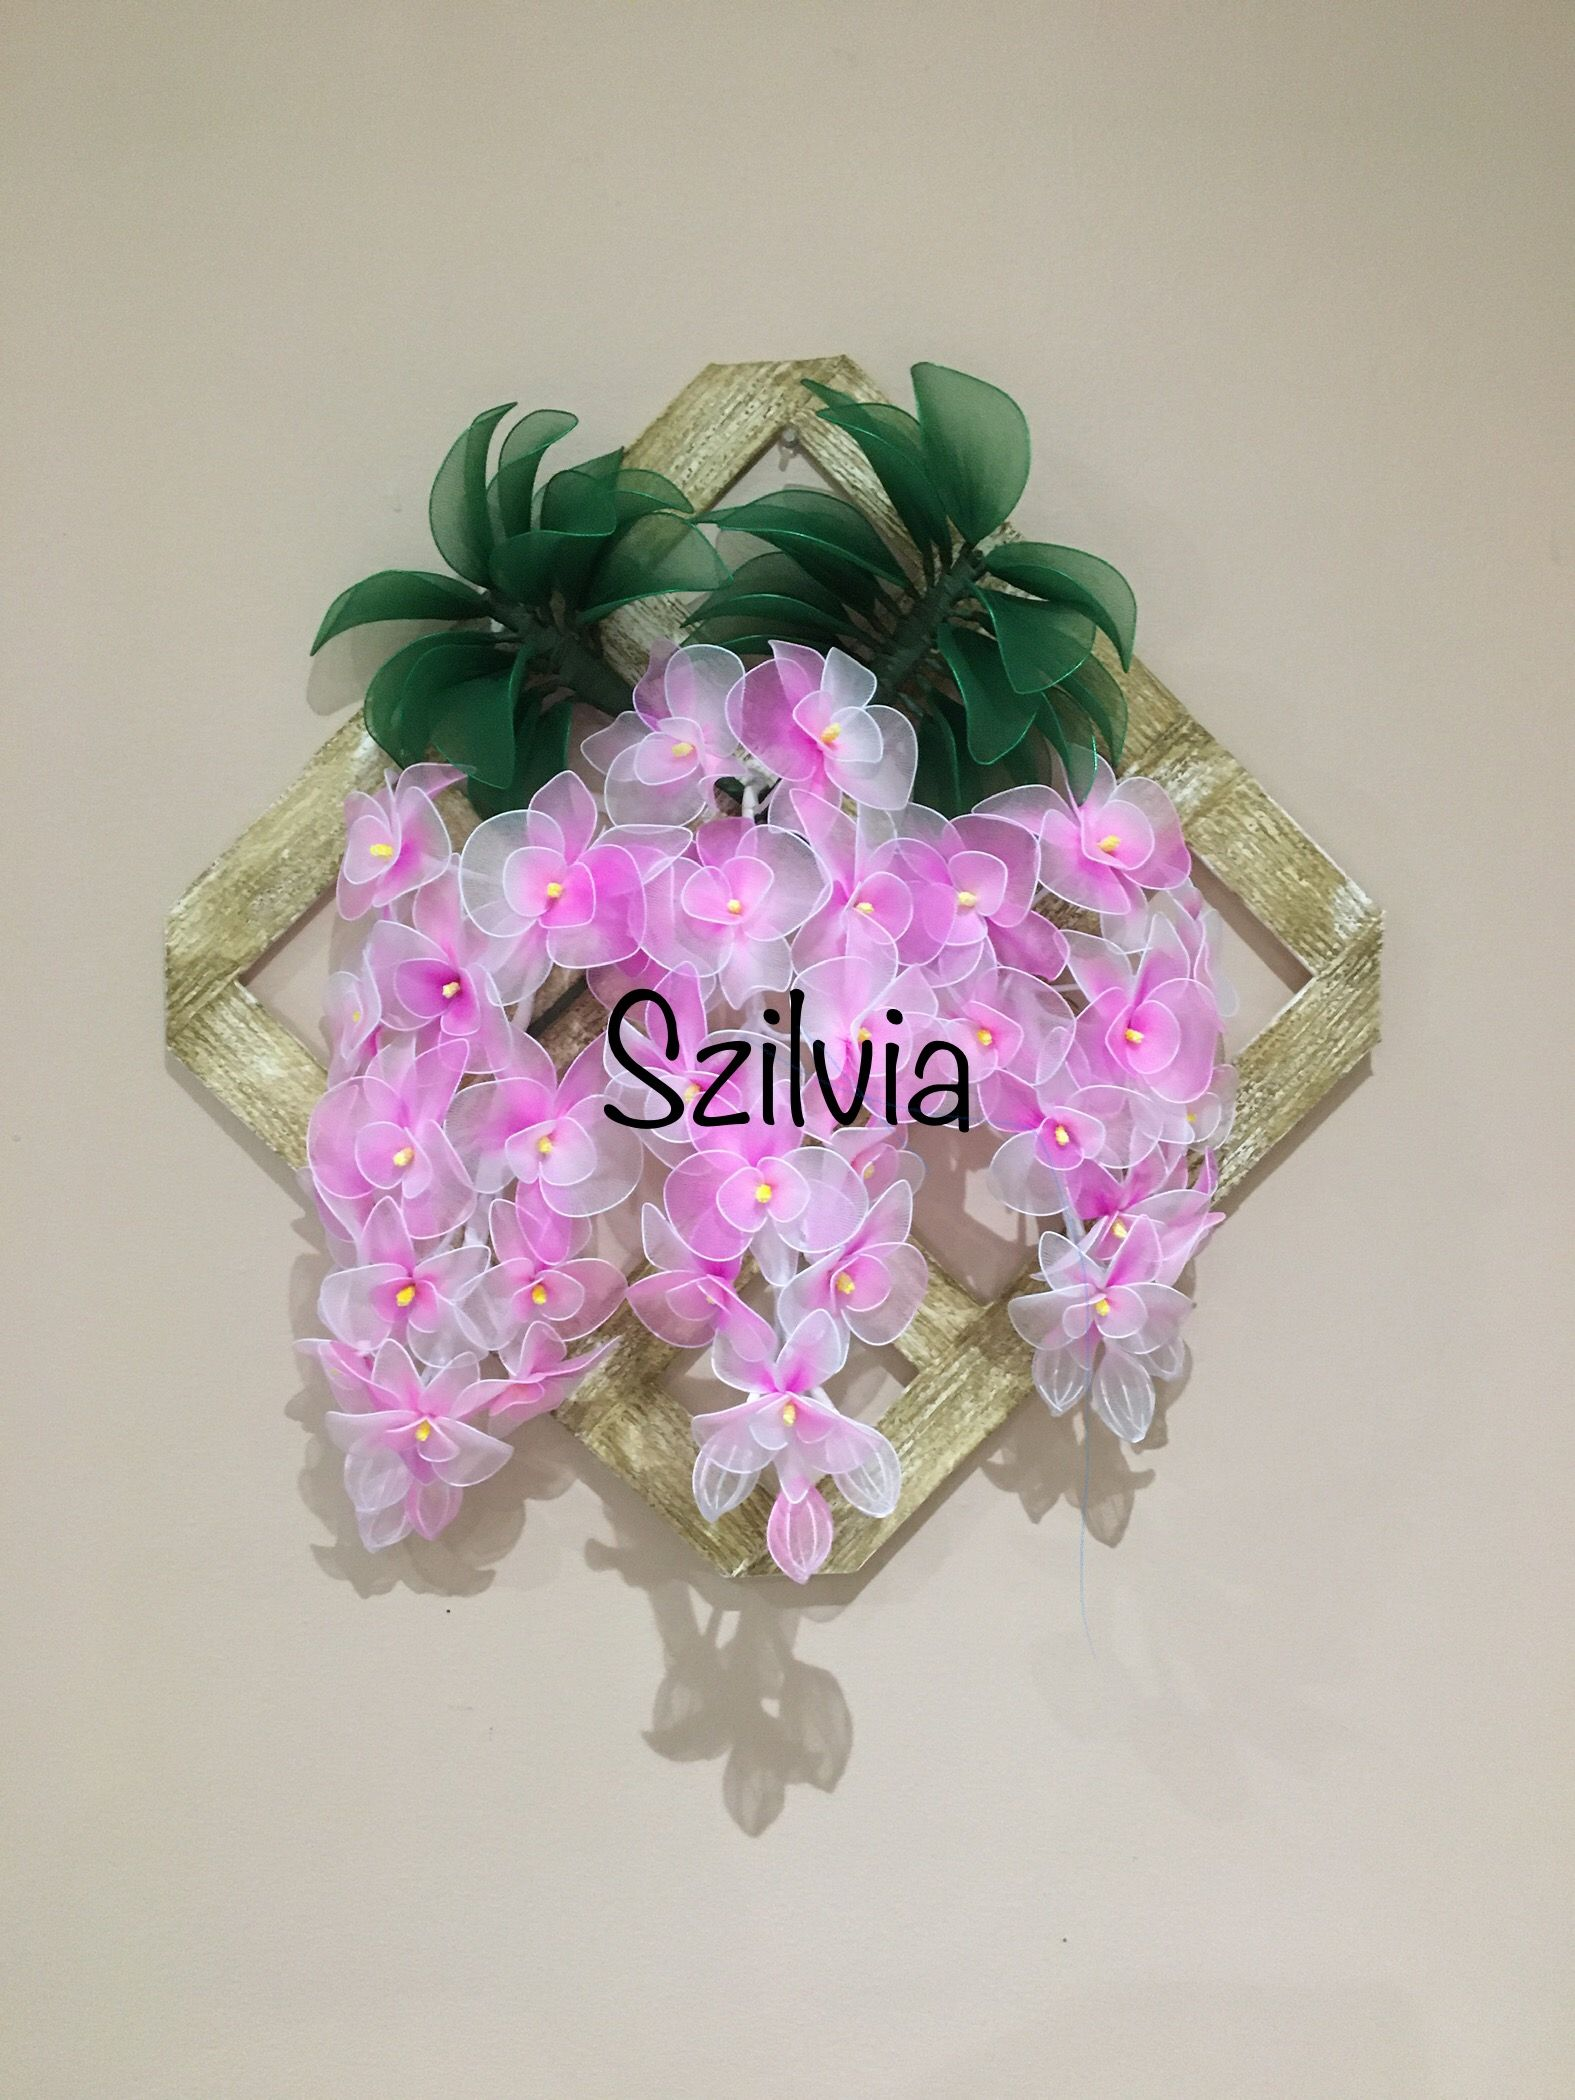 Pin By Rosa M On Kwiaty In 2021 Pink Orchids Flowers Flower Step By Step